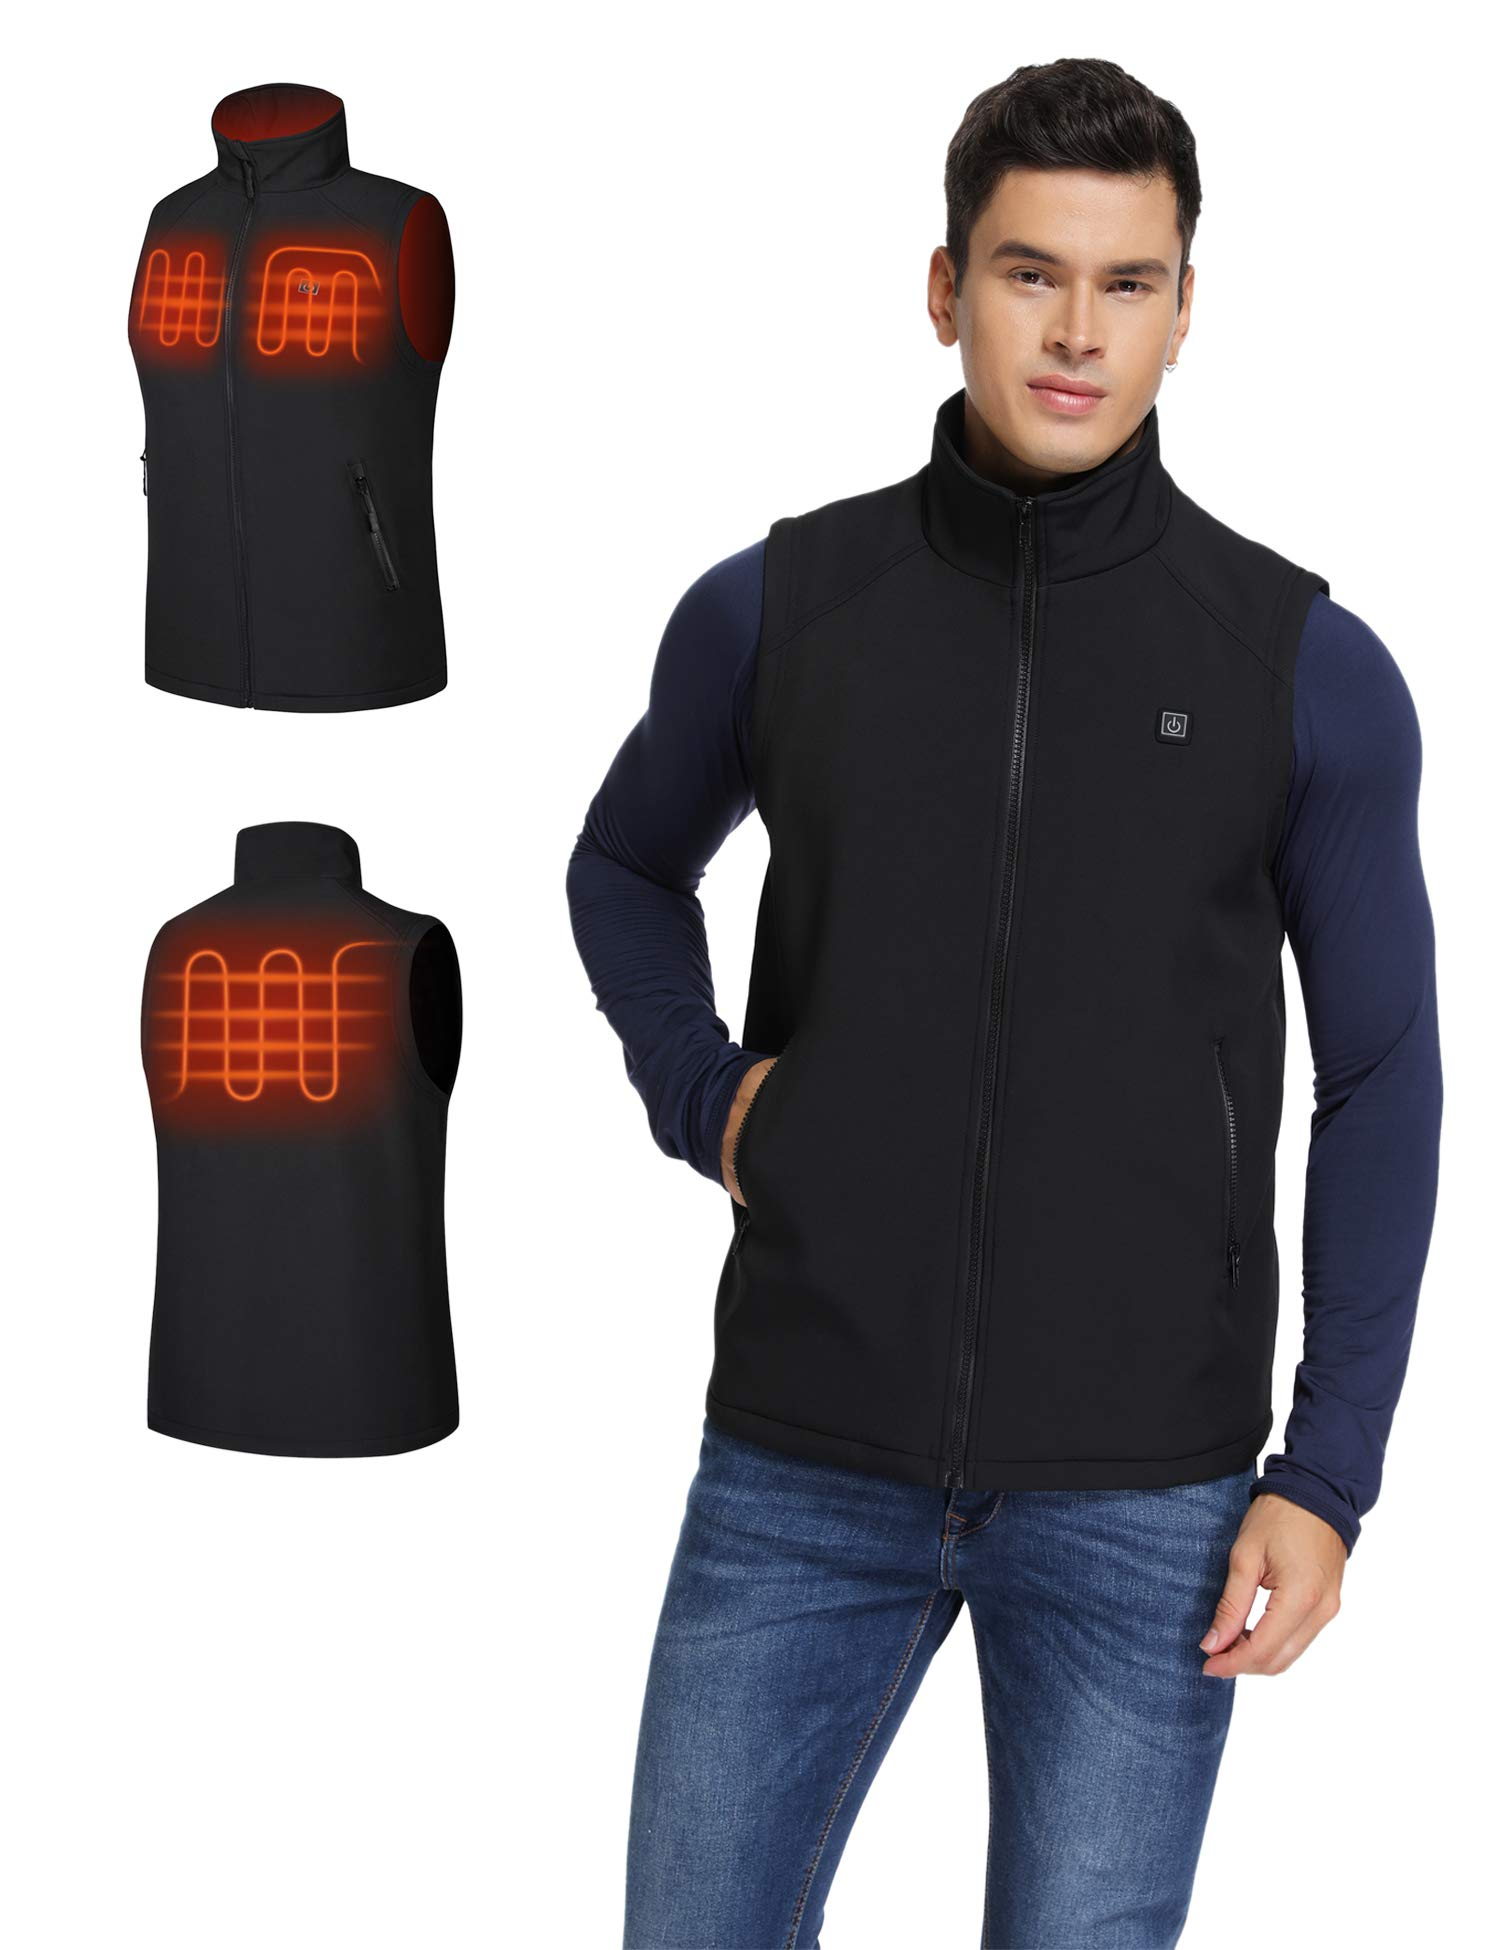 Aoymay Men's Lightweight Heating Vest 5V Electric Heated Vest with Battery Pack (S-XXL)